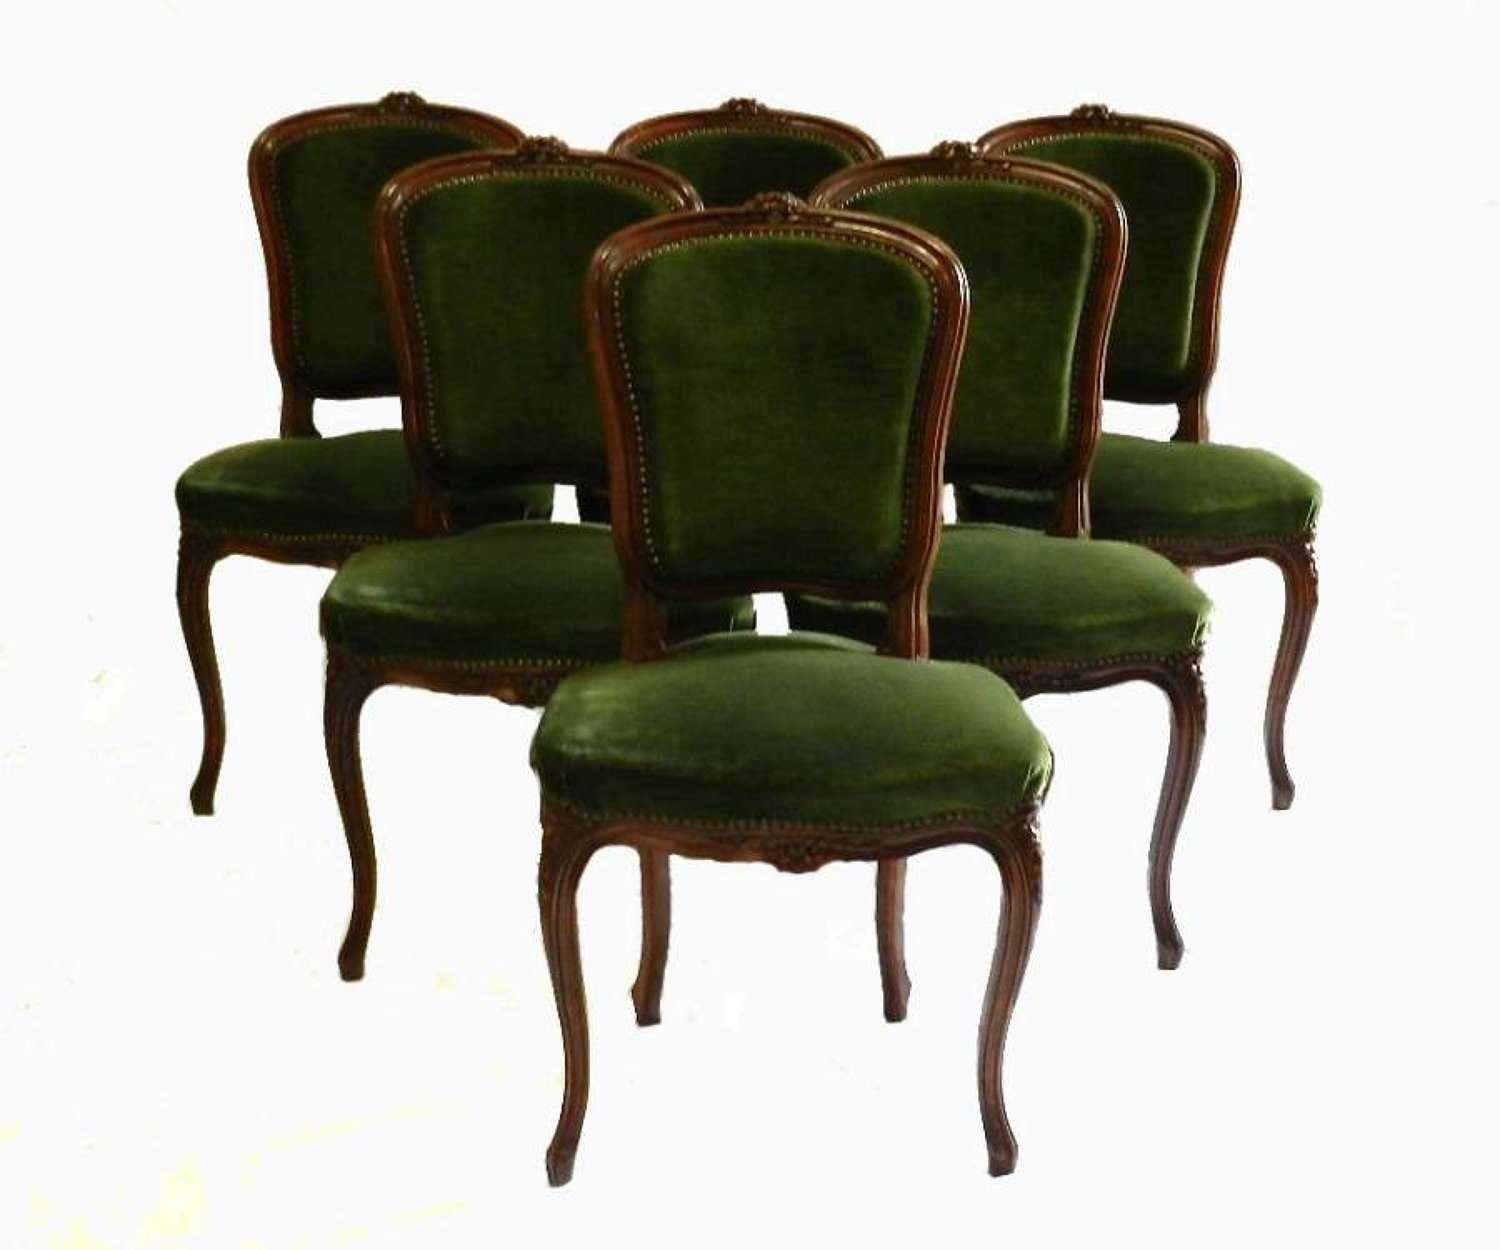 6 upholstered French Dining Chairs early vintage Louis revival